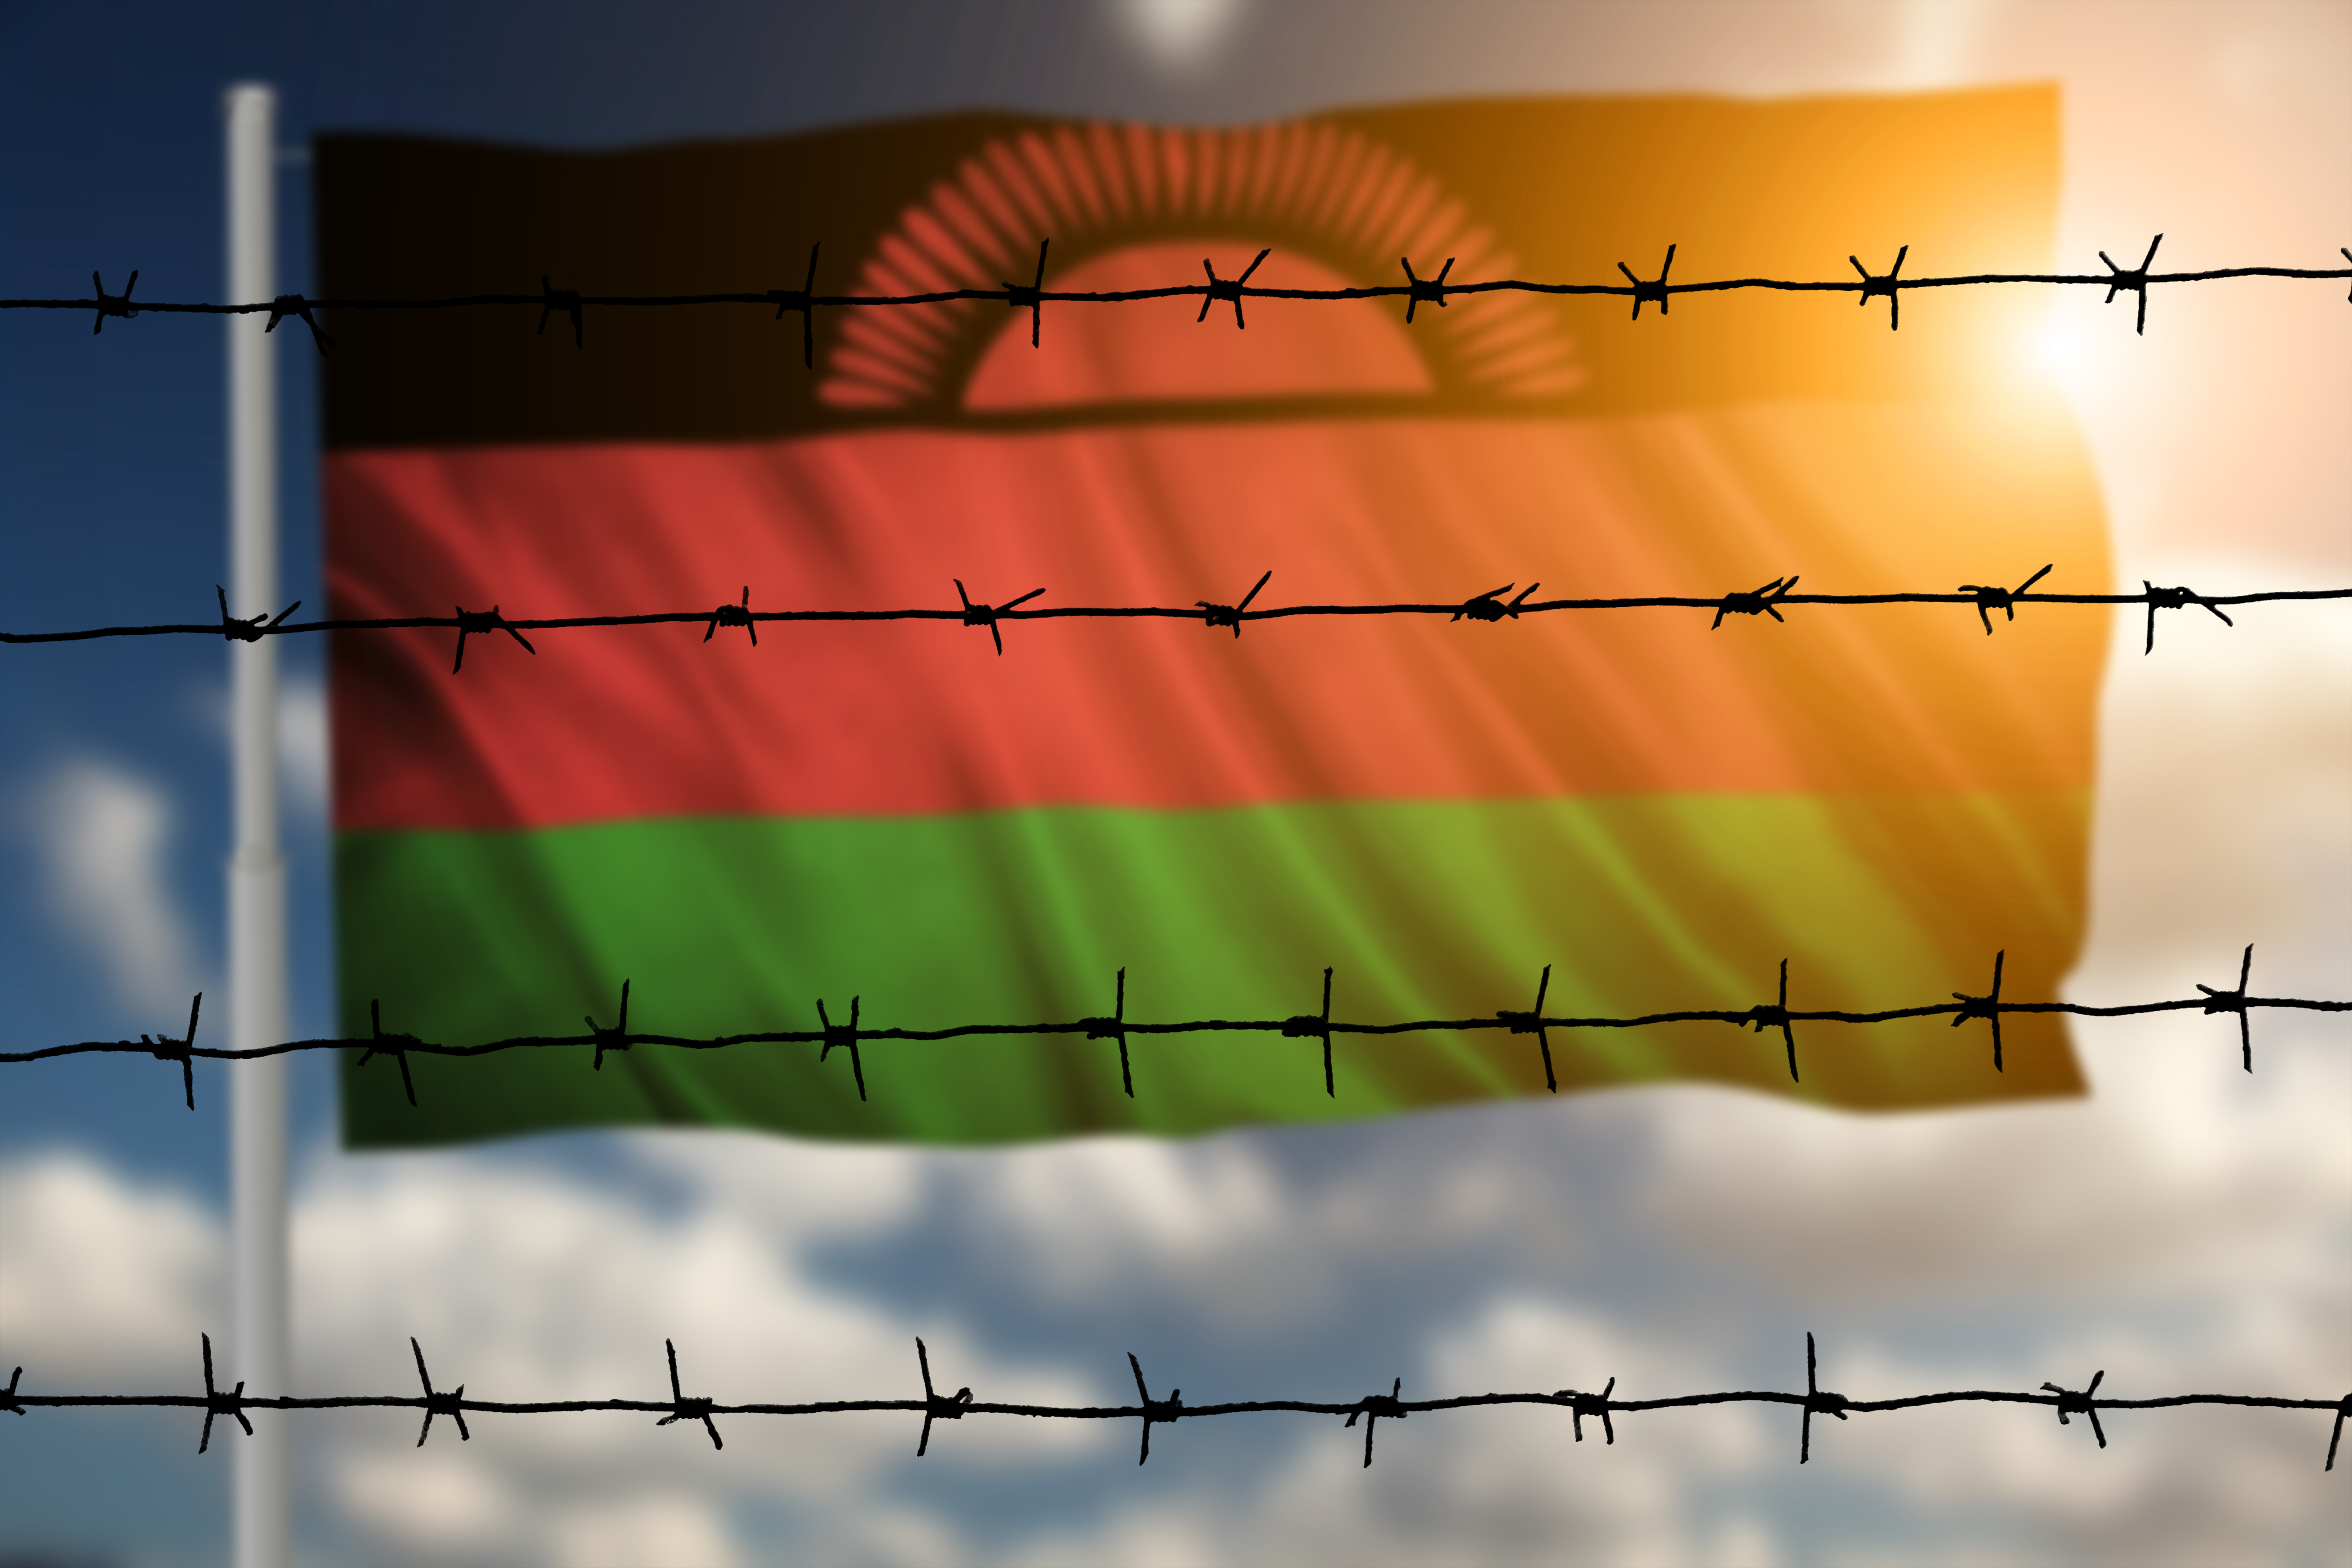 Malawi: The Internet Should Stay On to Help Ensure a Free and Fair Election in Malawi